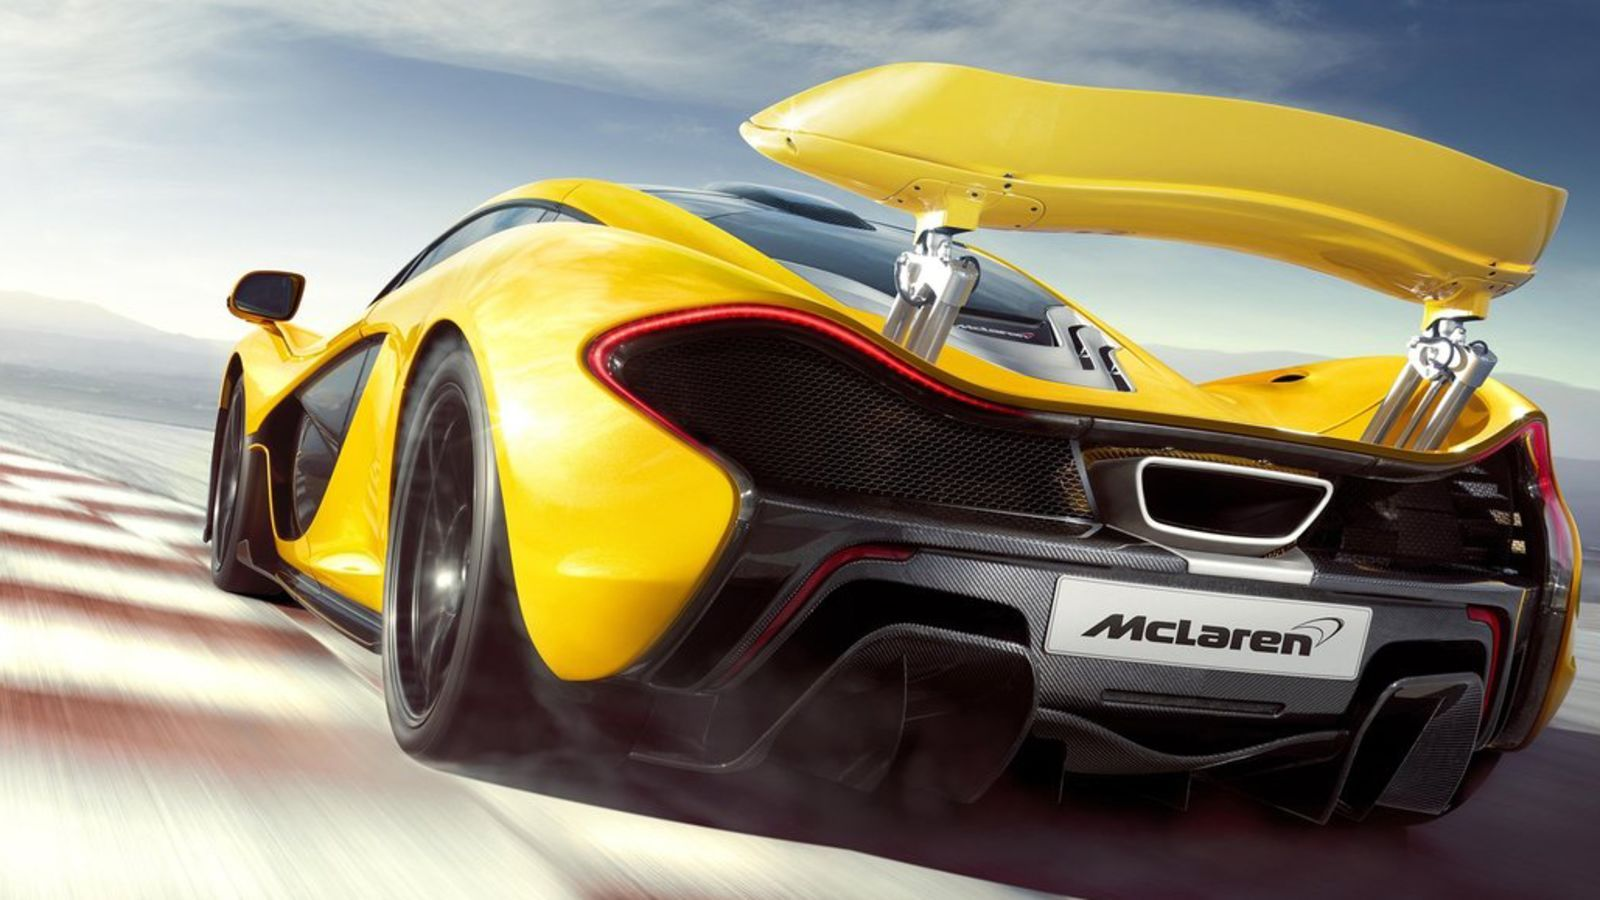 Here S Your Guide To Understanding The Confusing Mclaren Lineup Super Sport Cars Cheap Sports Cars Super Cars